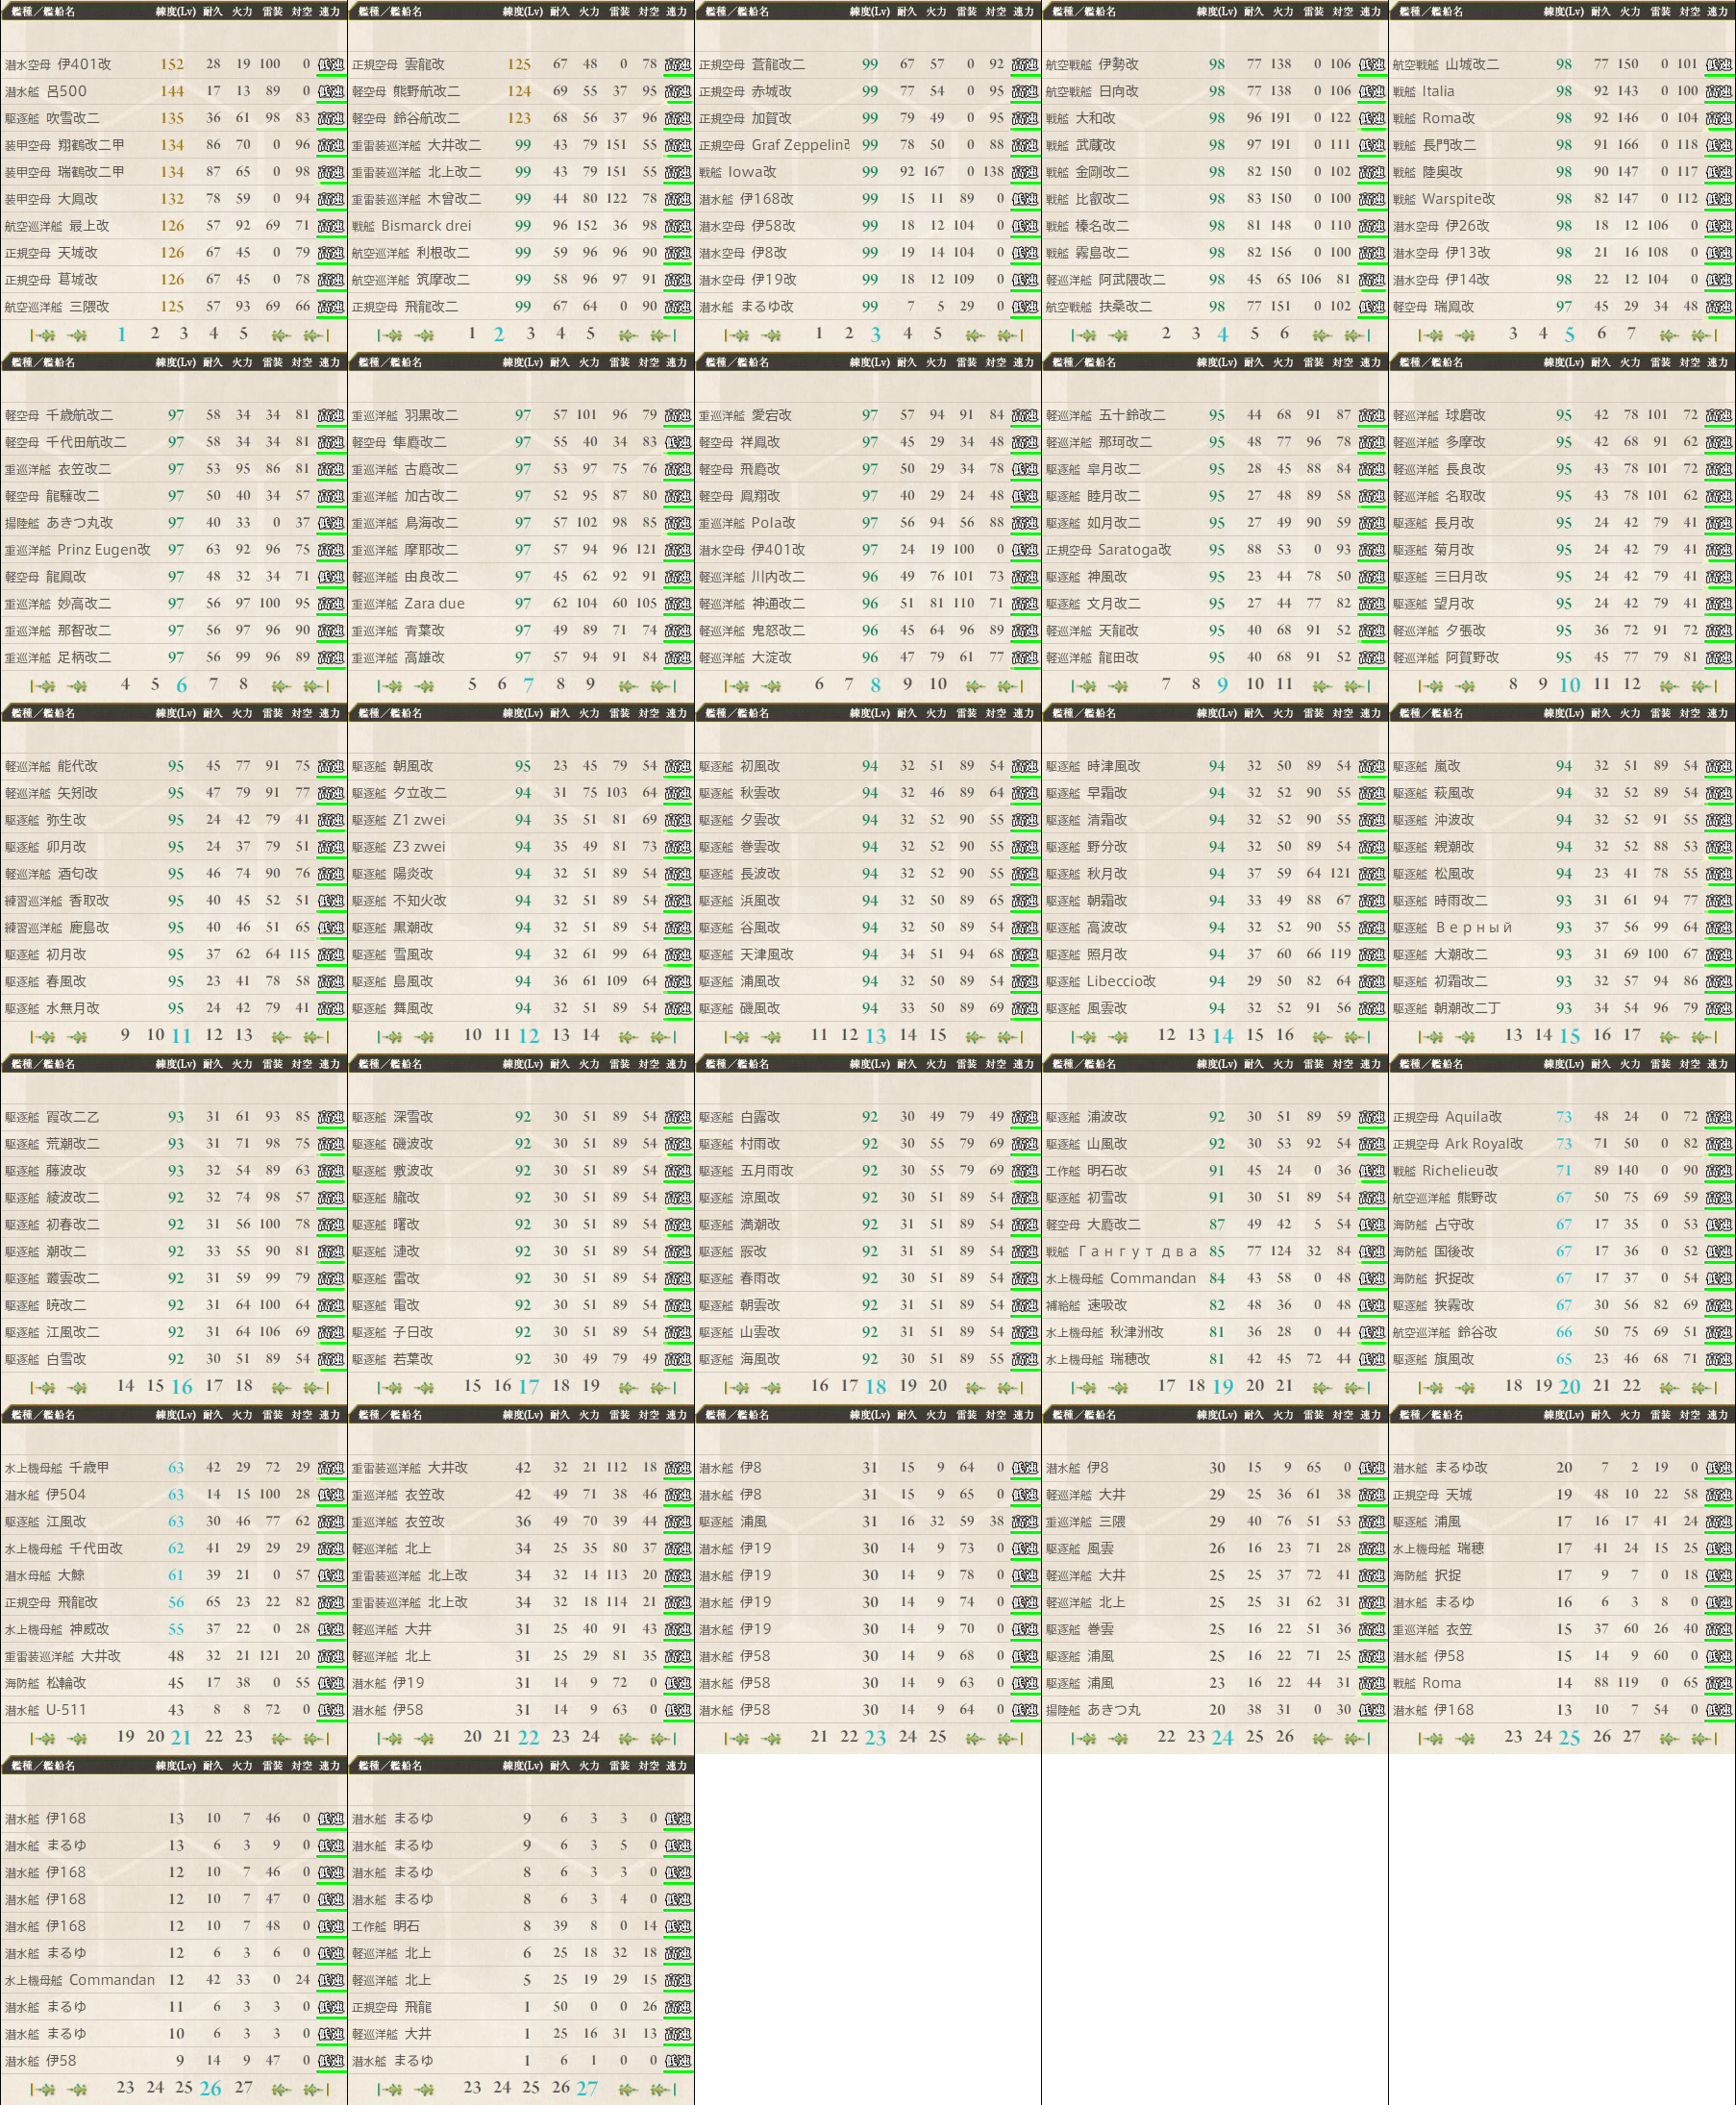 data.kancolle.levelsort.20171119.png